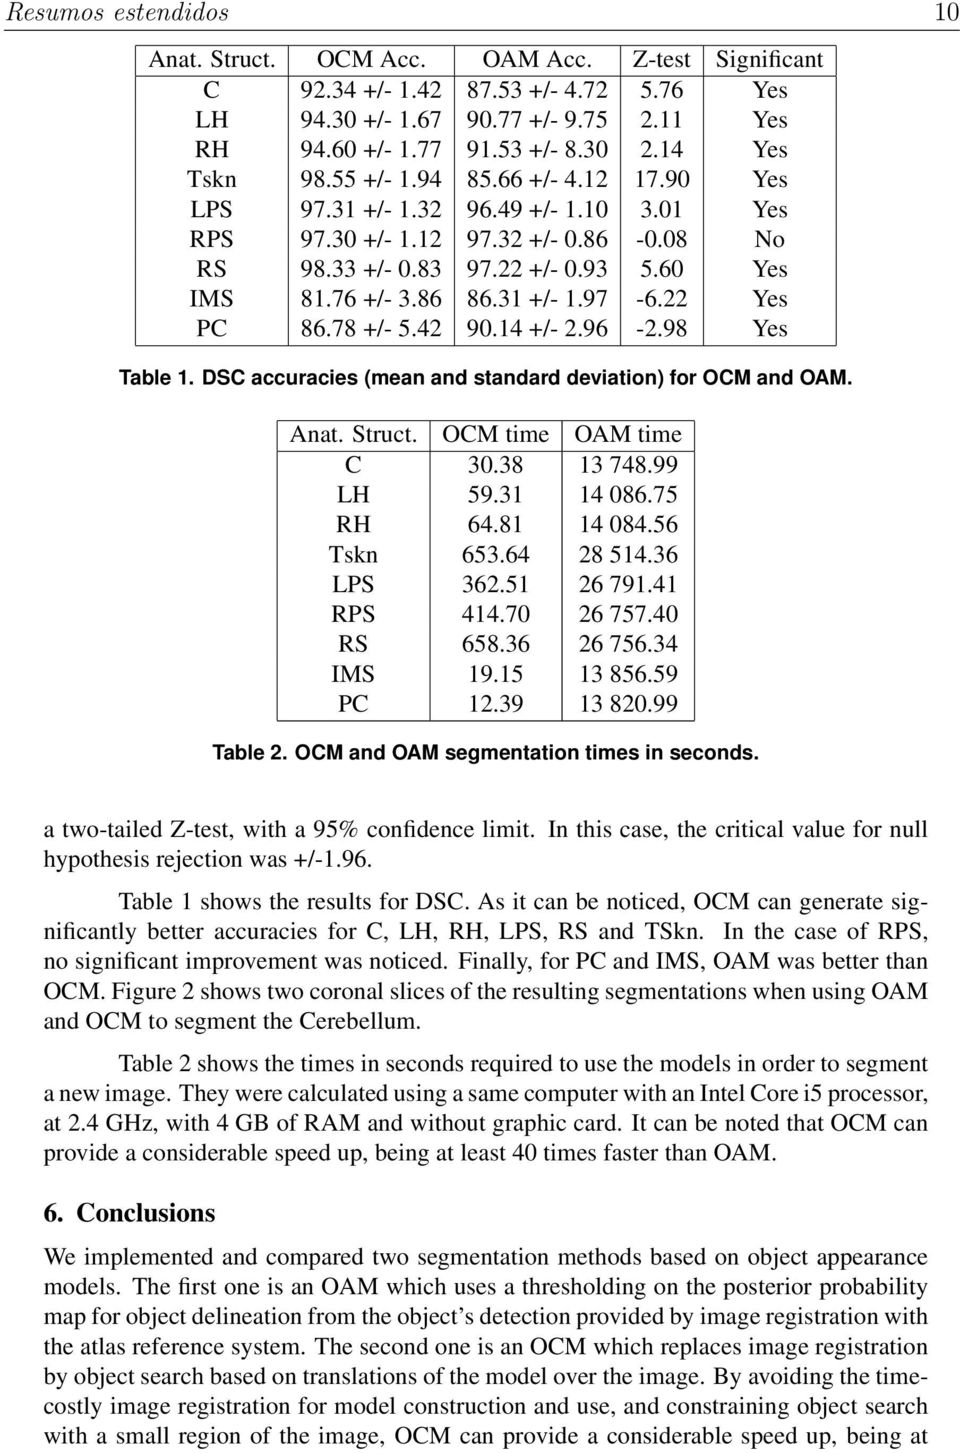 86 86.31 +/- 1.97-6.22 Yes PC 86.78 +/- 5.42 90.14 +/- 2.96-2.98 Yes Table 1. DSC accuracies (mean and standard deviation) for OCM and OAM. Anat. Struct. OCM time OAM time C 30.38 13 748.99 LH 59.